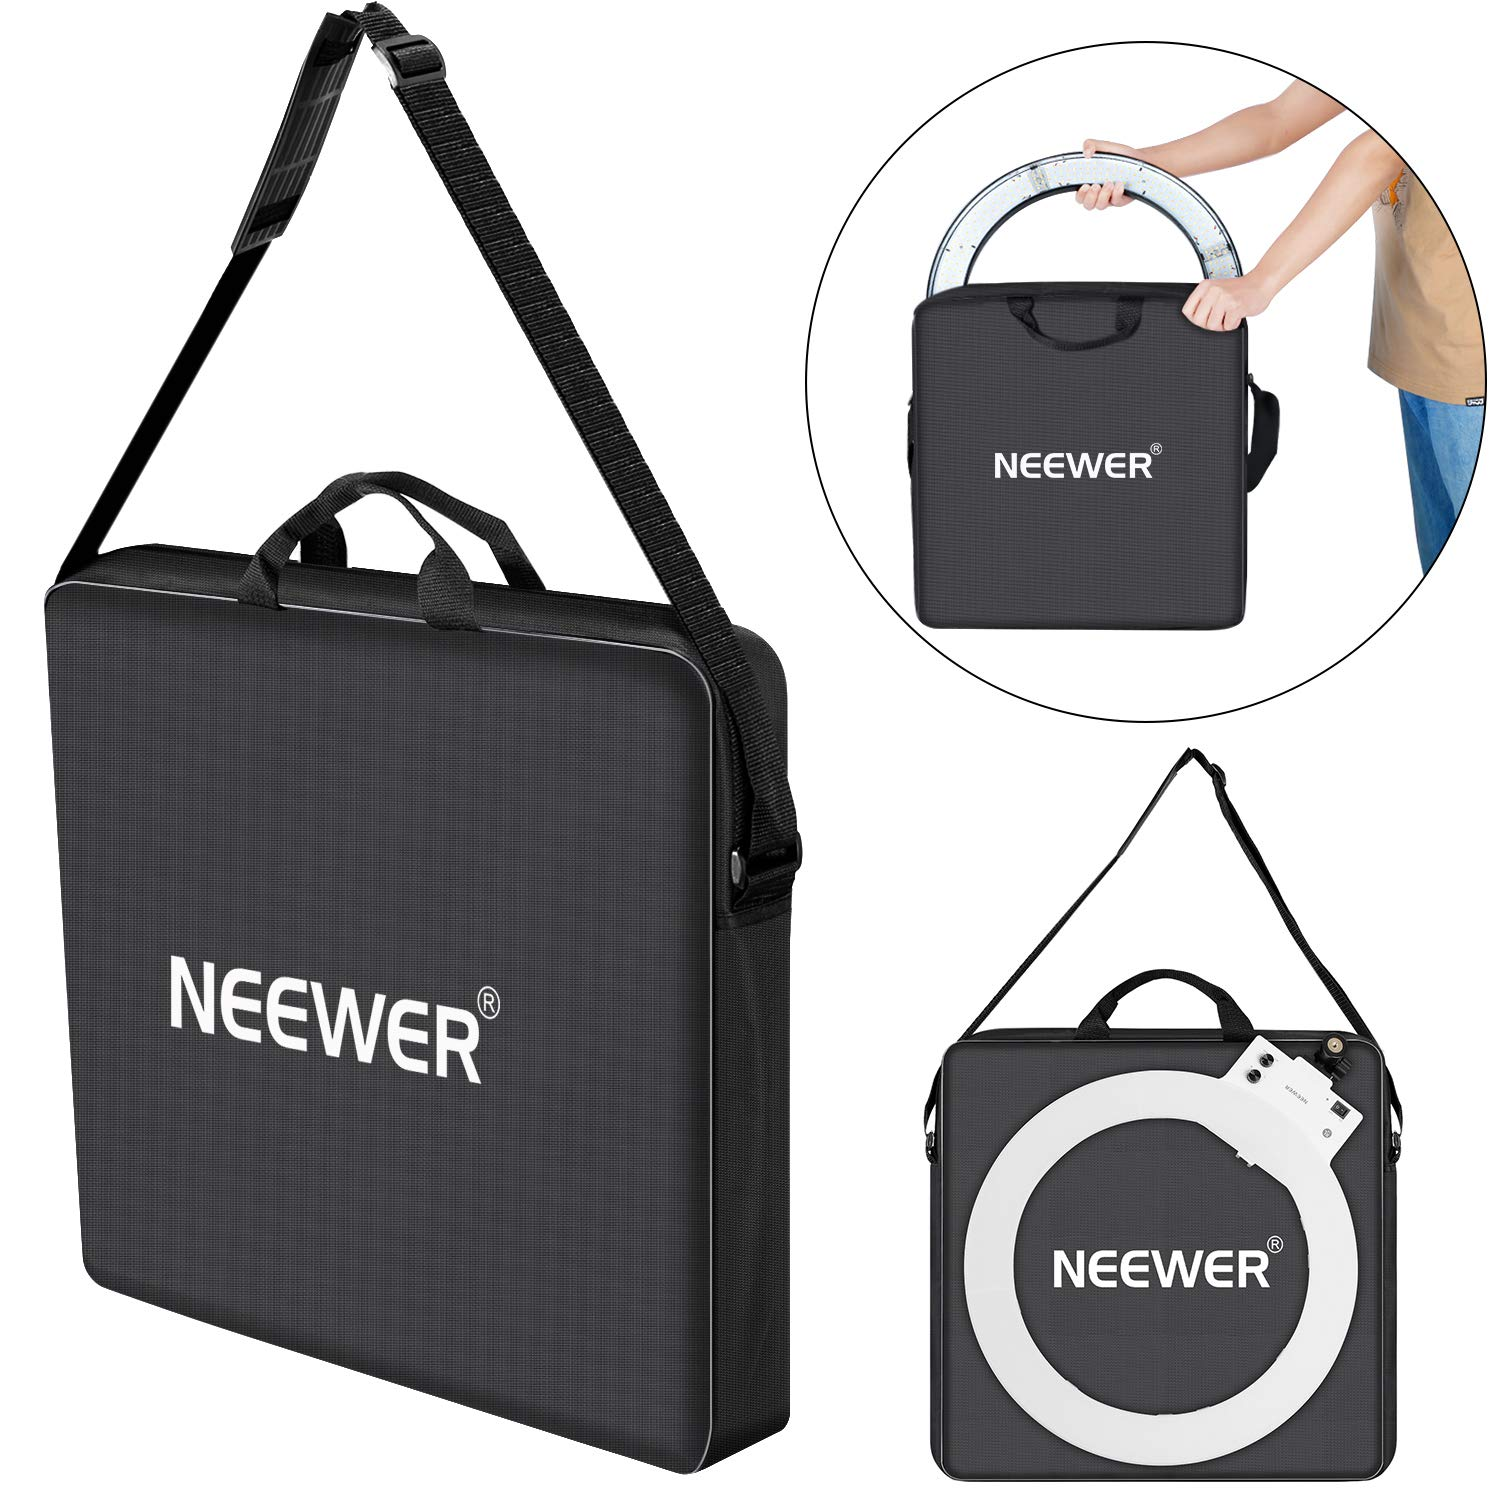 Neewer Photography Carrying Bag Protective Case Compatible with 18 inches Camera Ring Light - 21x21 inches/52x52 Centimeters, Durable Nylon, Light Weight (Black) by Neewer